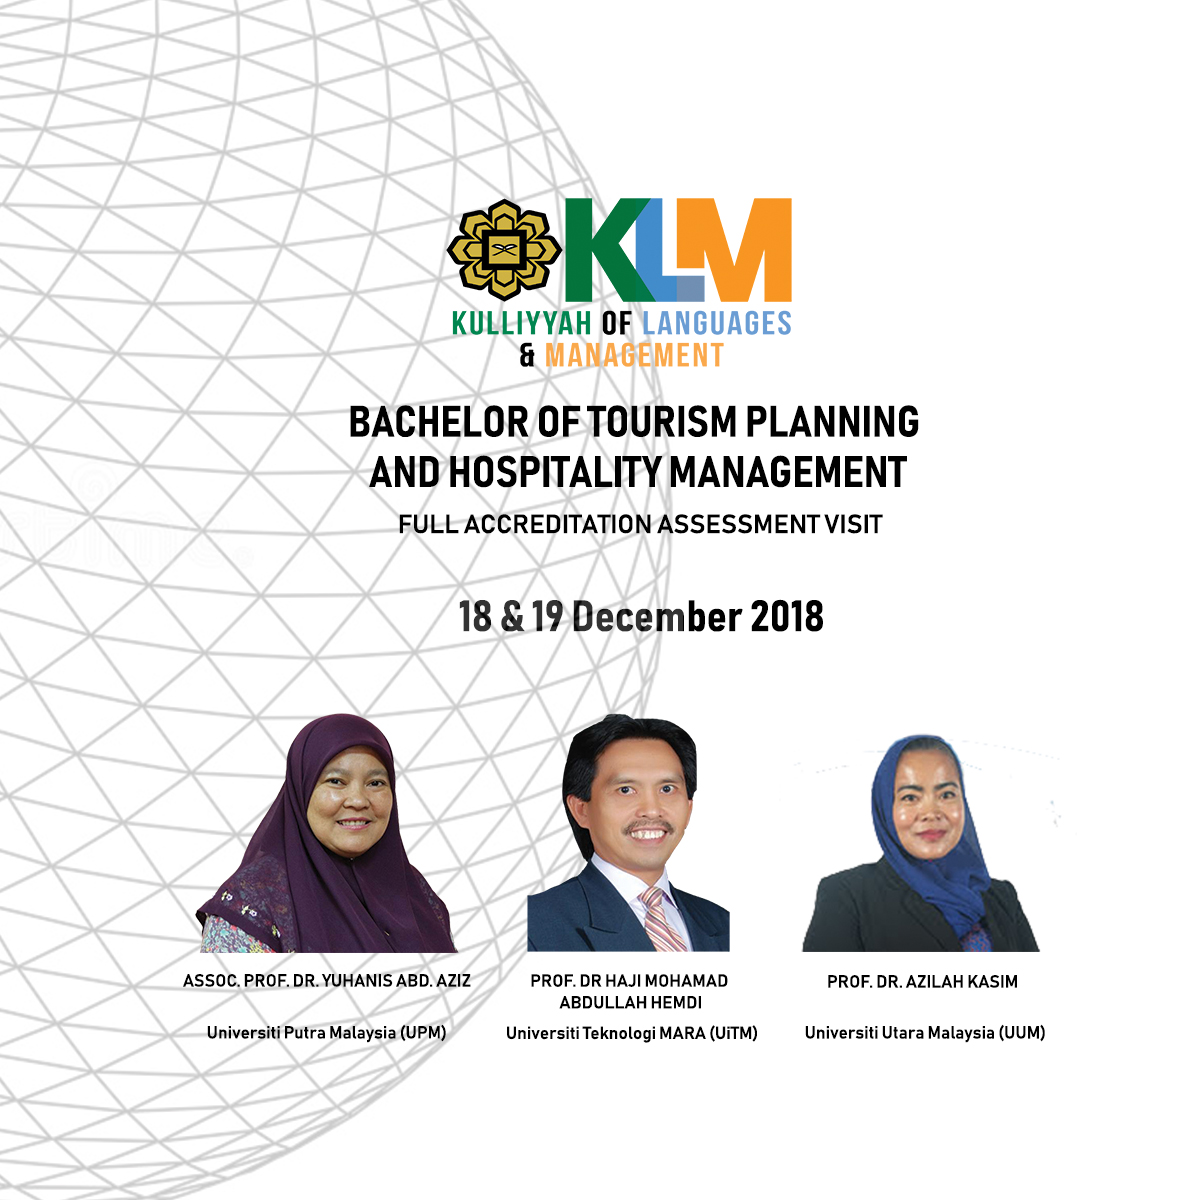 Full Accreditation Assessment Visit for Bachelor of Tourism Planning and Hosplitality Management